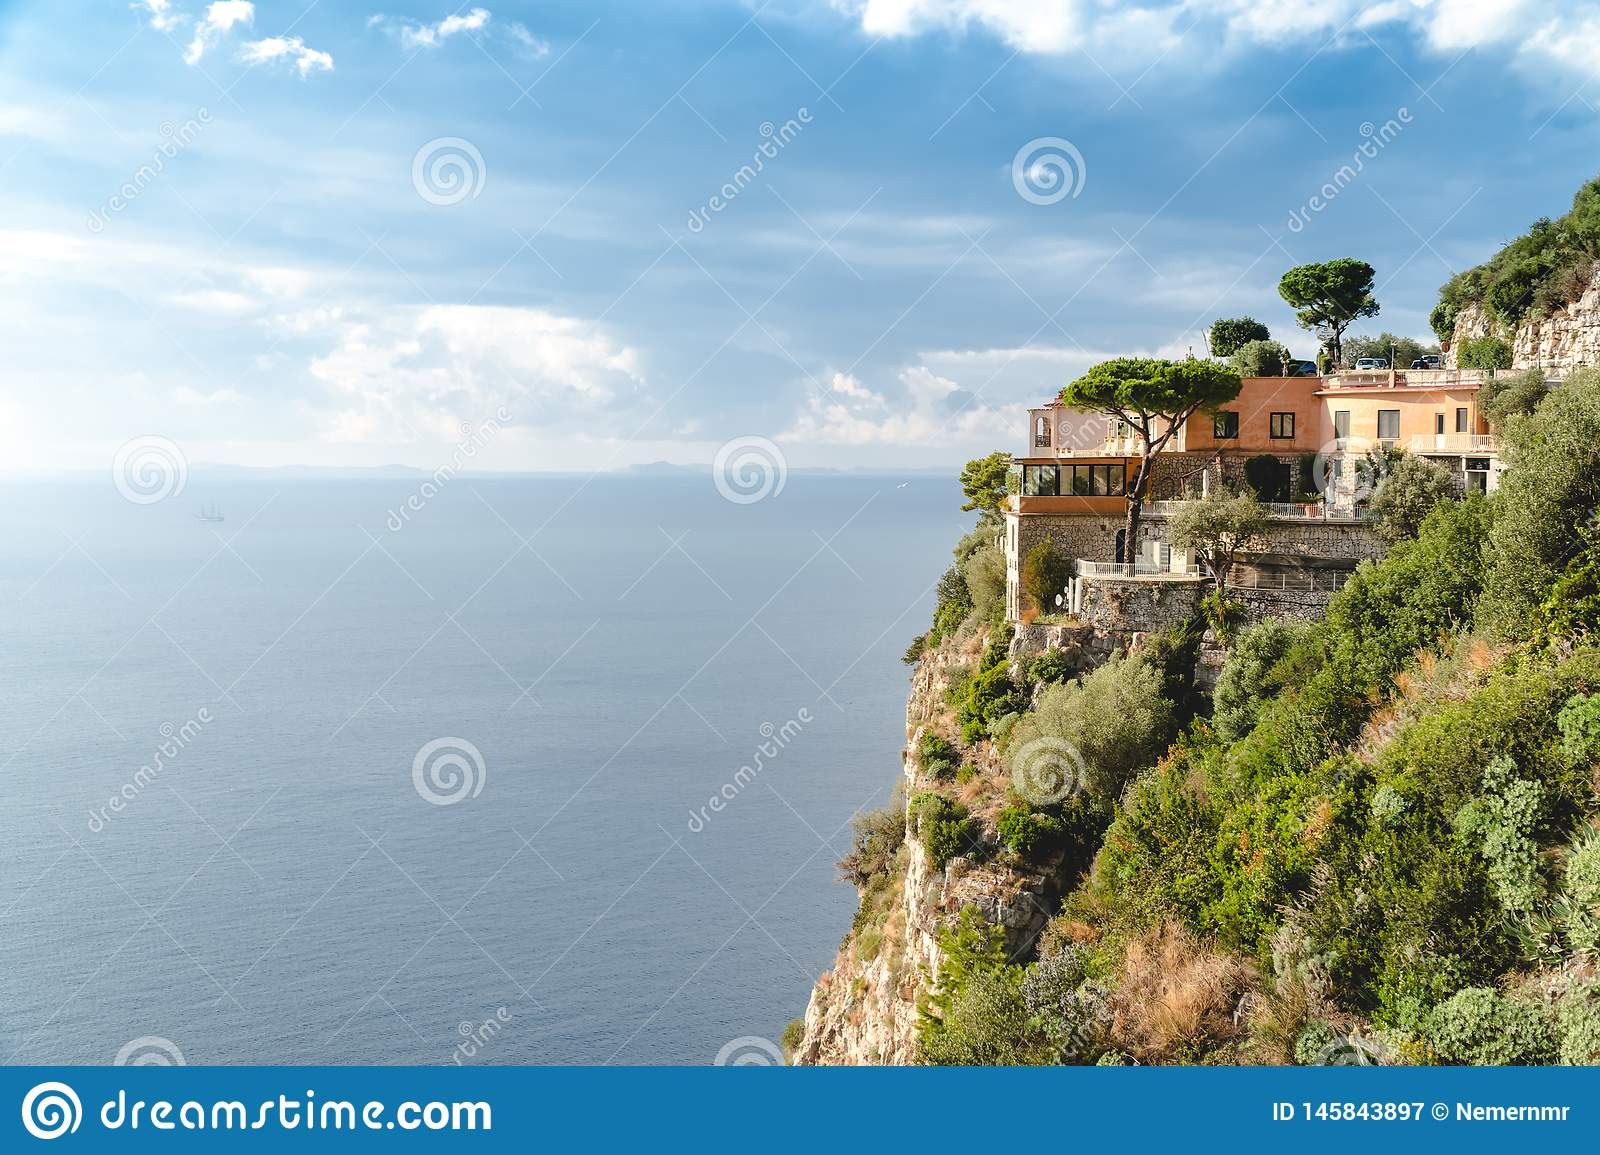 Hotel in Paradise, beautiful panoramic view on the rocky bay at sunny day, travel to Europe, vacation travel tour, mountains hotel